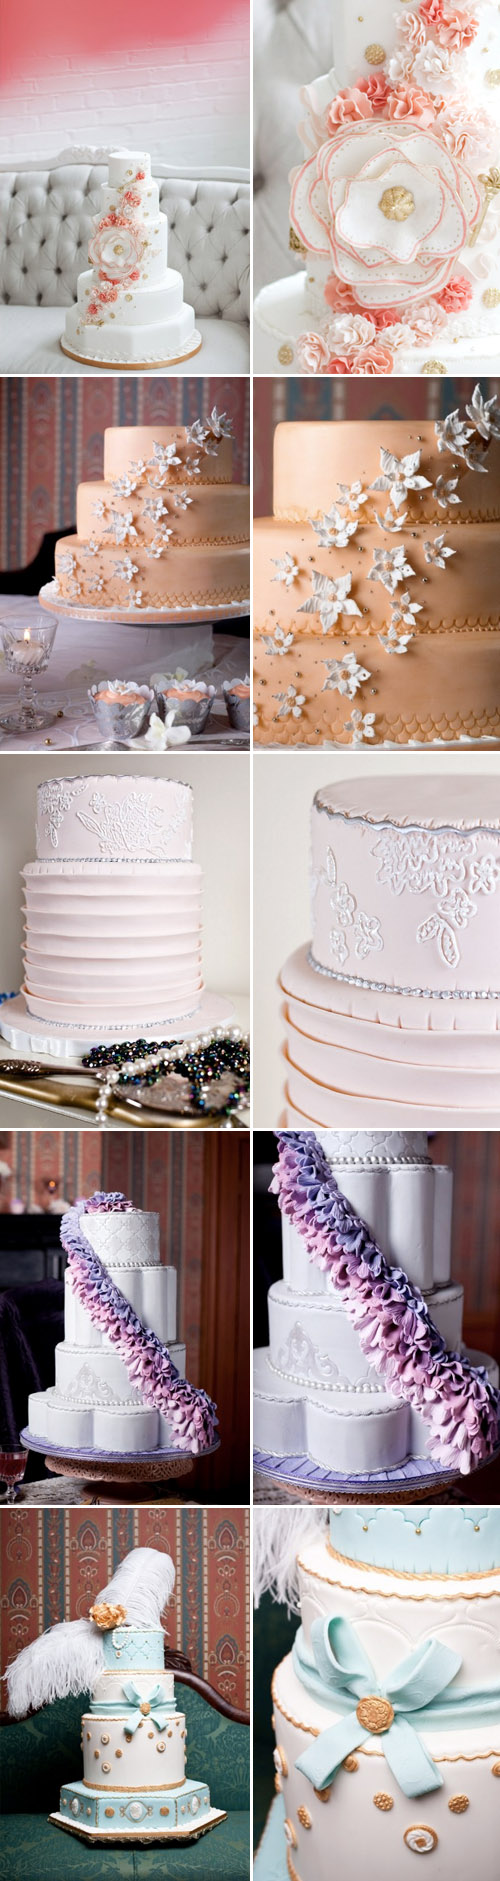 amazing fashion inspired wedding cakes from Lori Hutchinson of Toronto's The Caketress